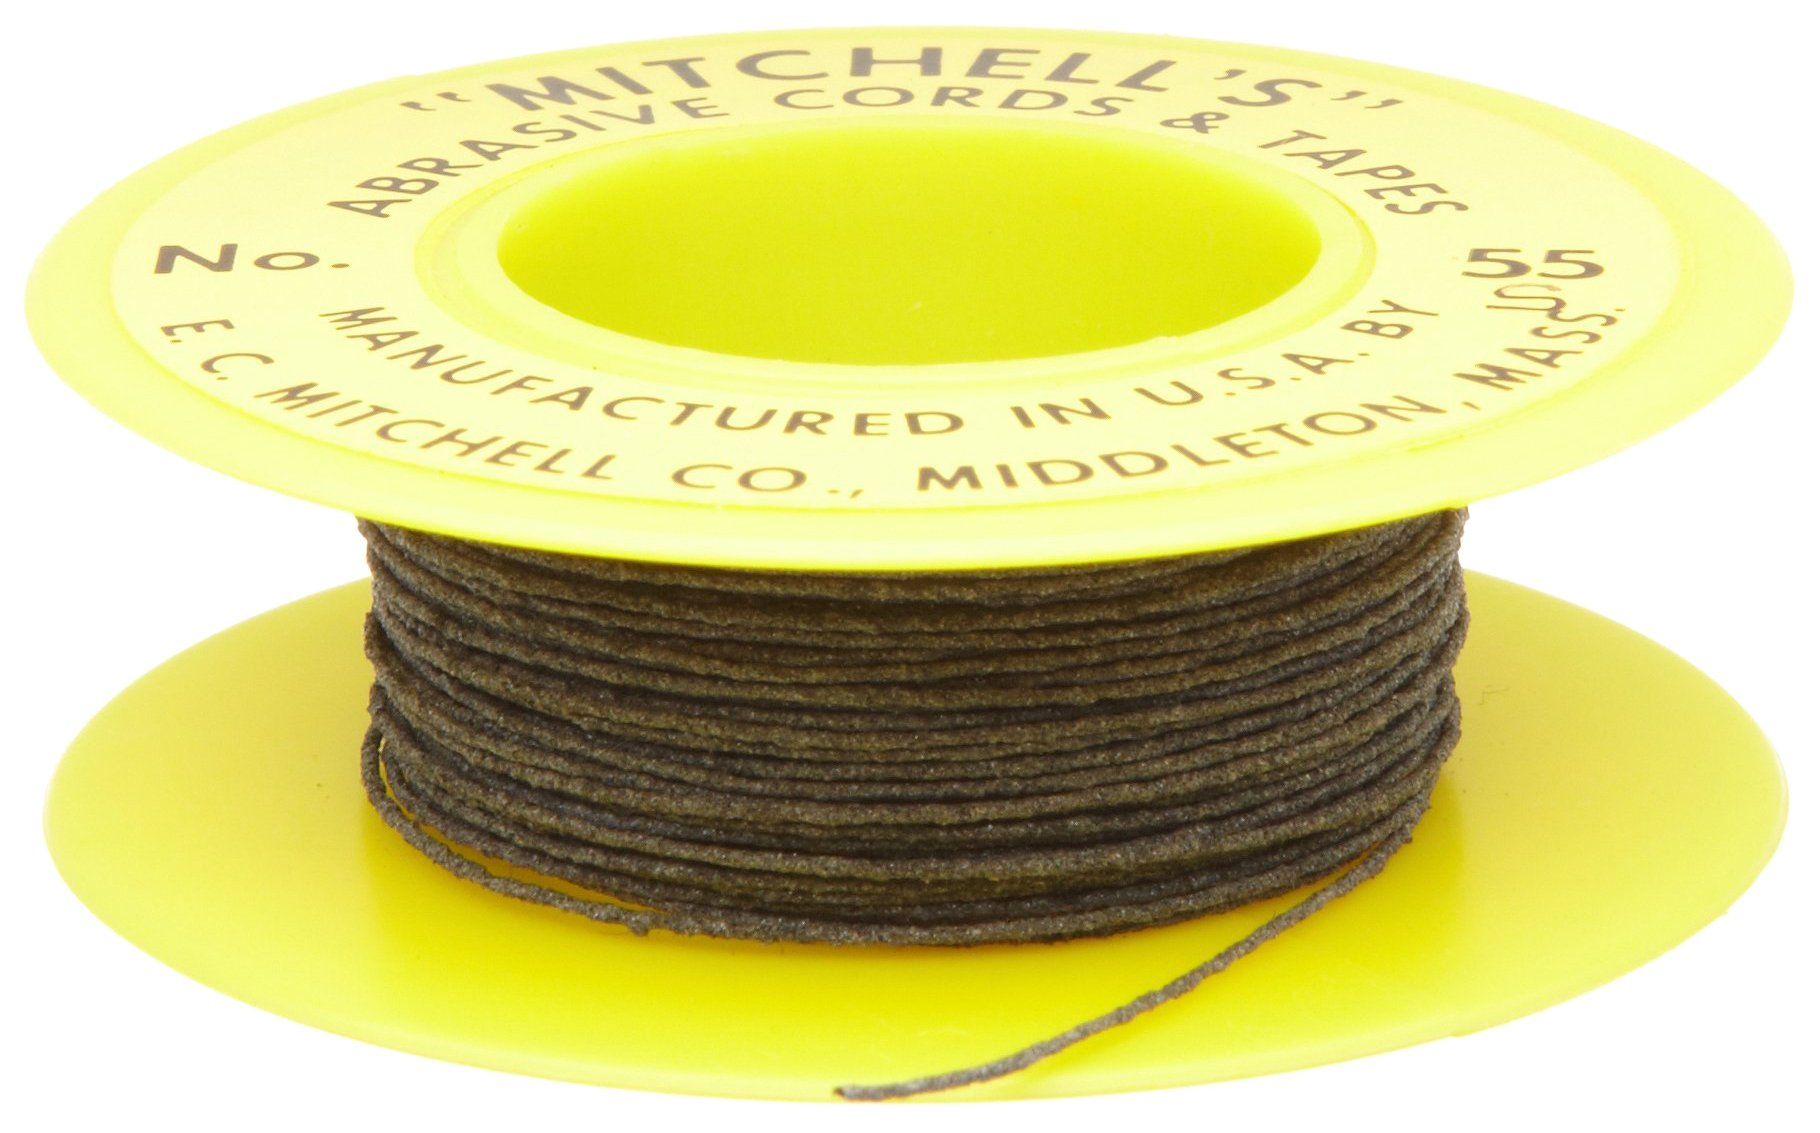 Mitchell Abrasives 55-S Round Abrasive Cord, Silicon Carbide 200 Grit .018'' Diameter x 25 Feet